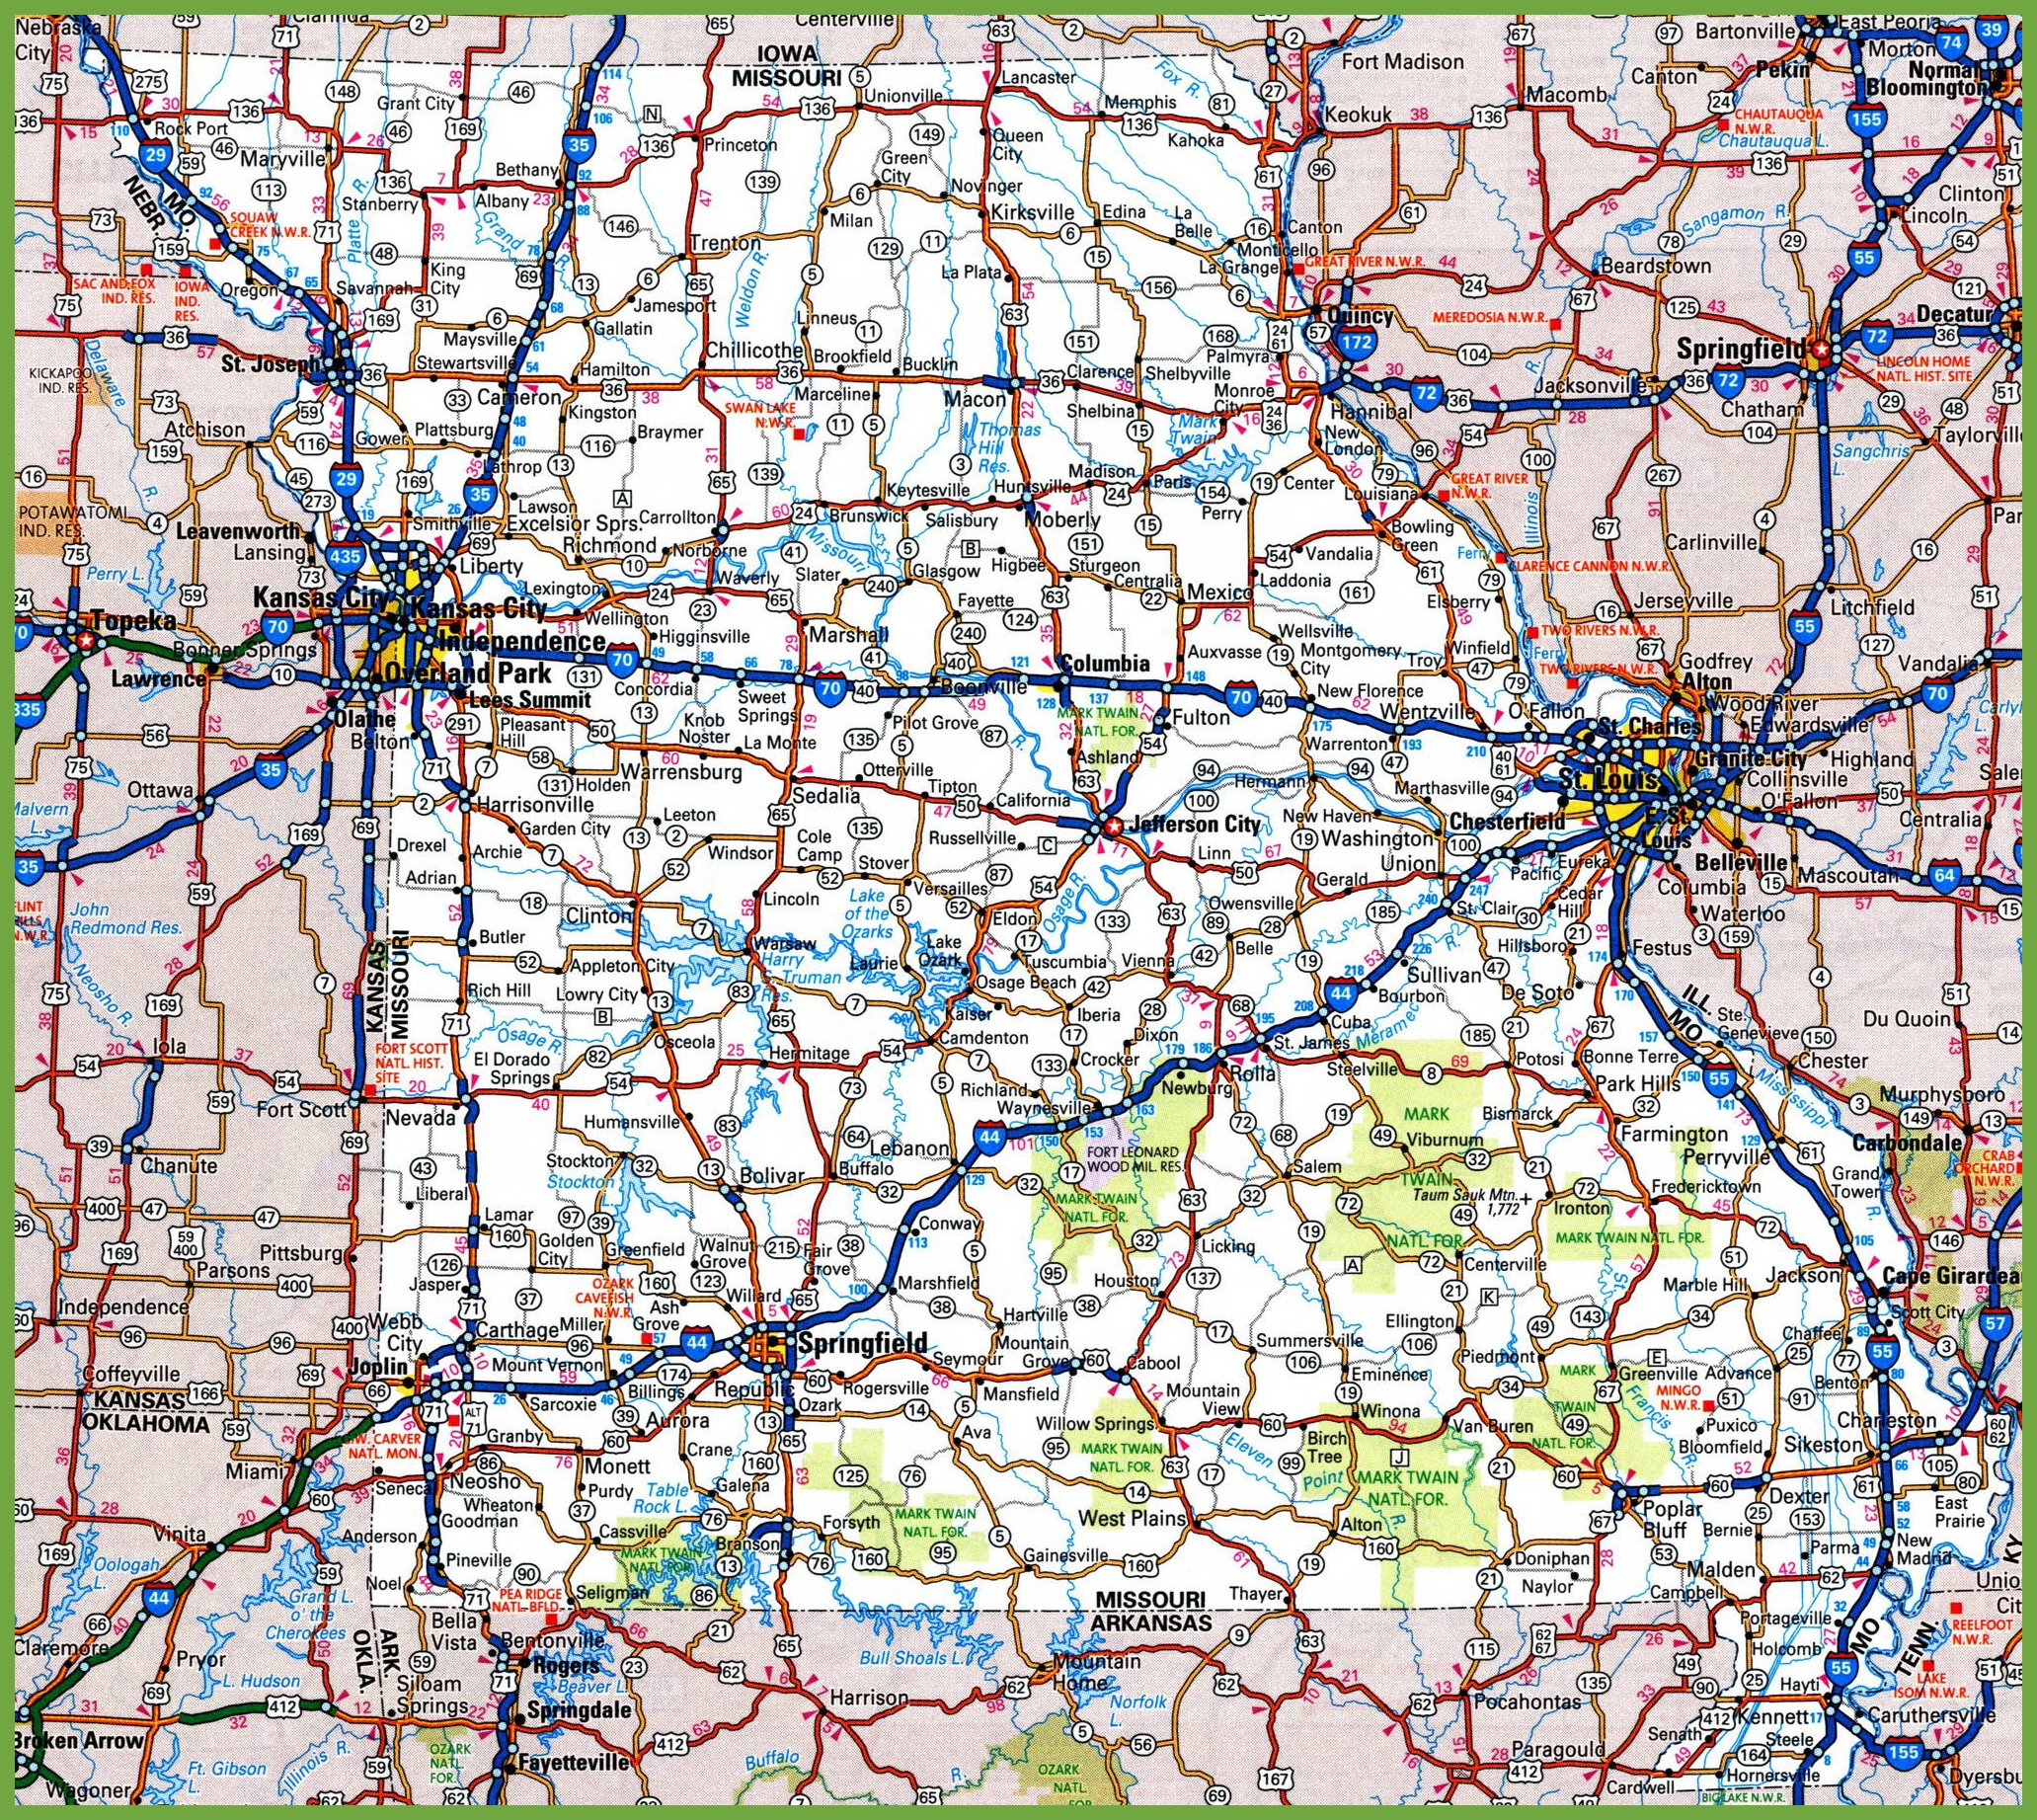 Missouri State Maps USA Maps Of Missouri MO - Missouri on map of usa